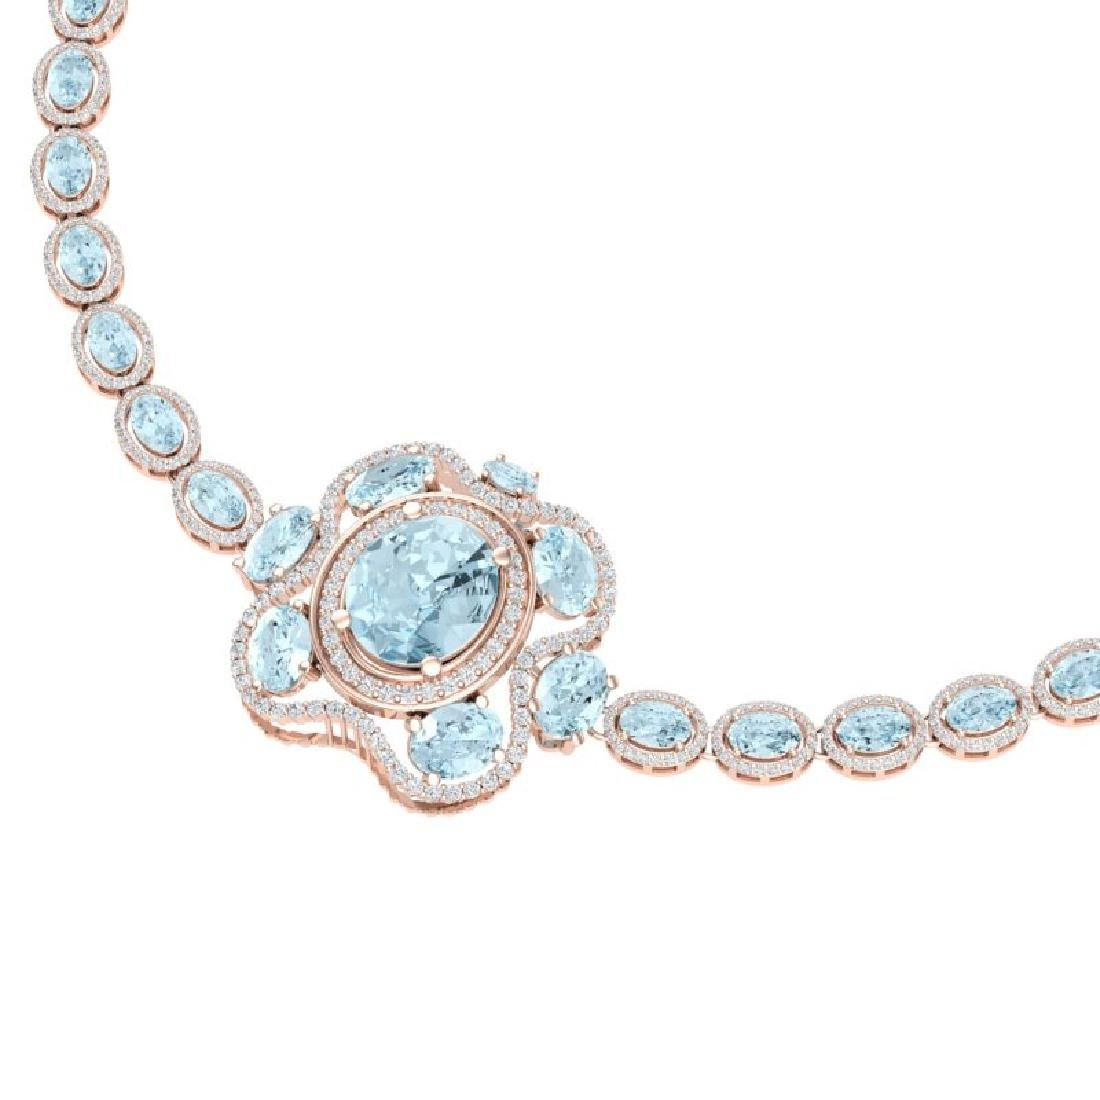 47.72 CTW Royalty Sky Topaz & VS Diamond Necklace 18K